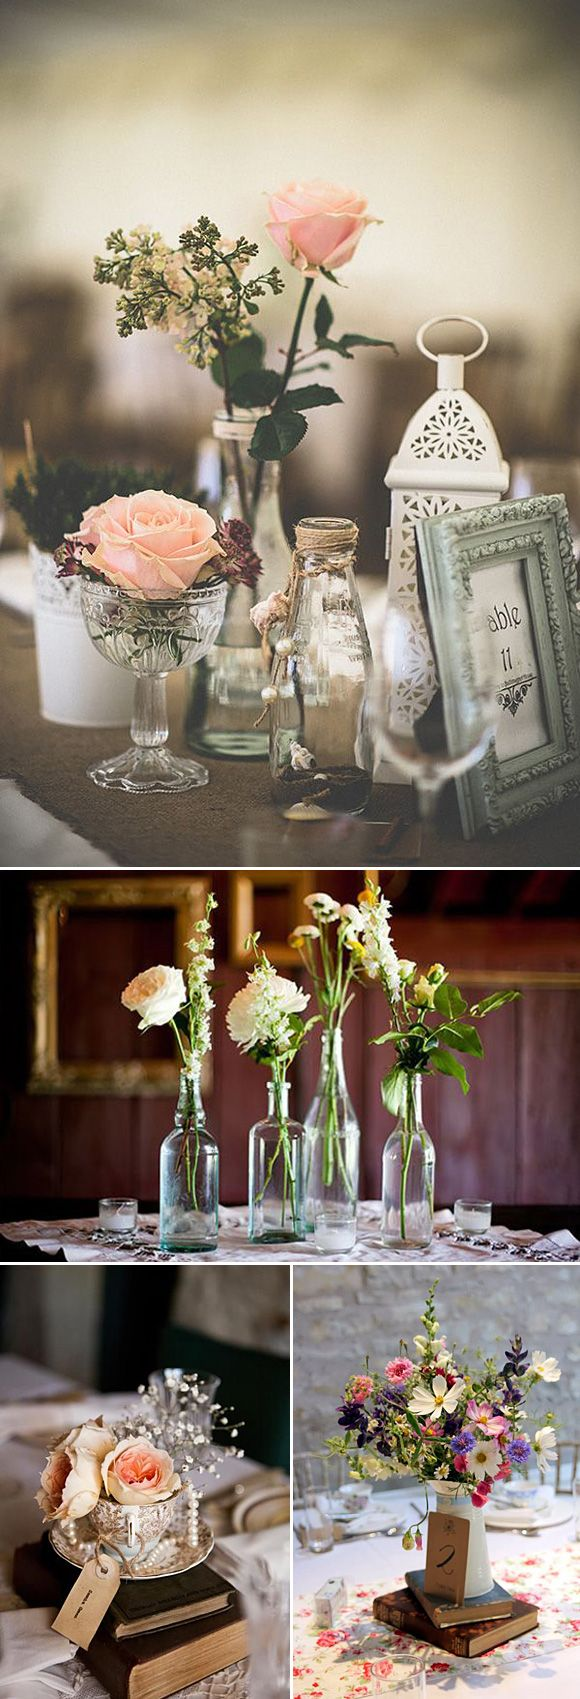 Centros de mesa para bodas vintage wedding decor ideas - Decoracion vintage ideas ...